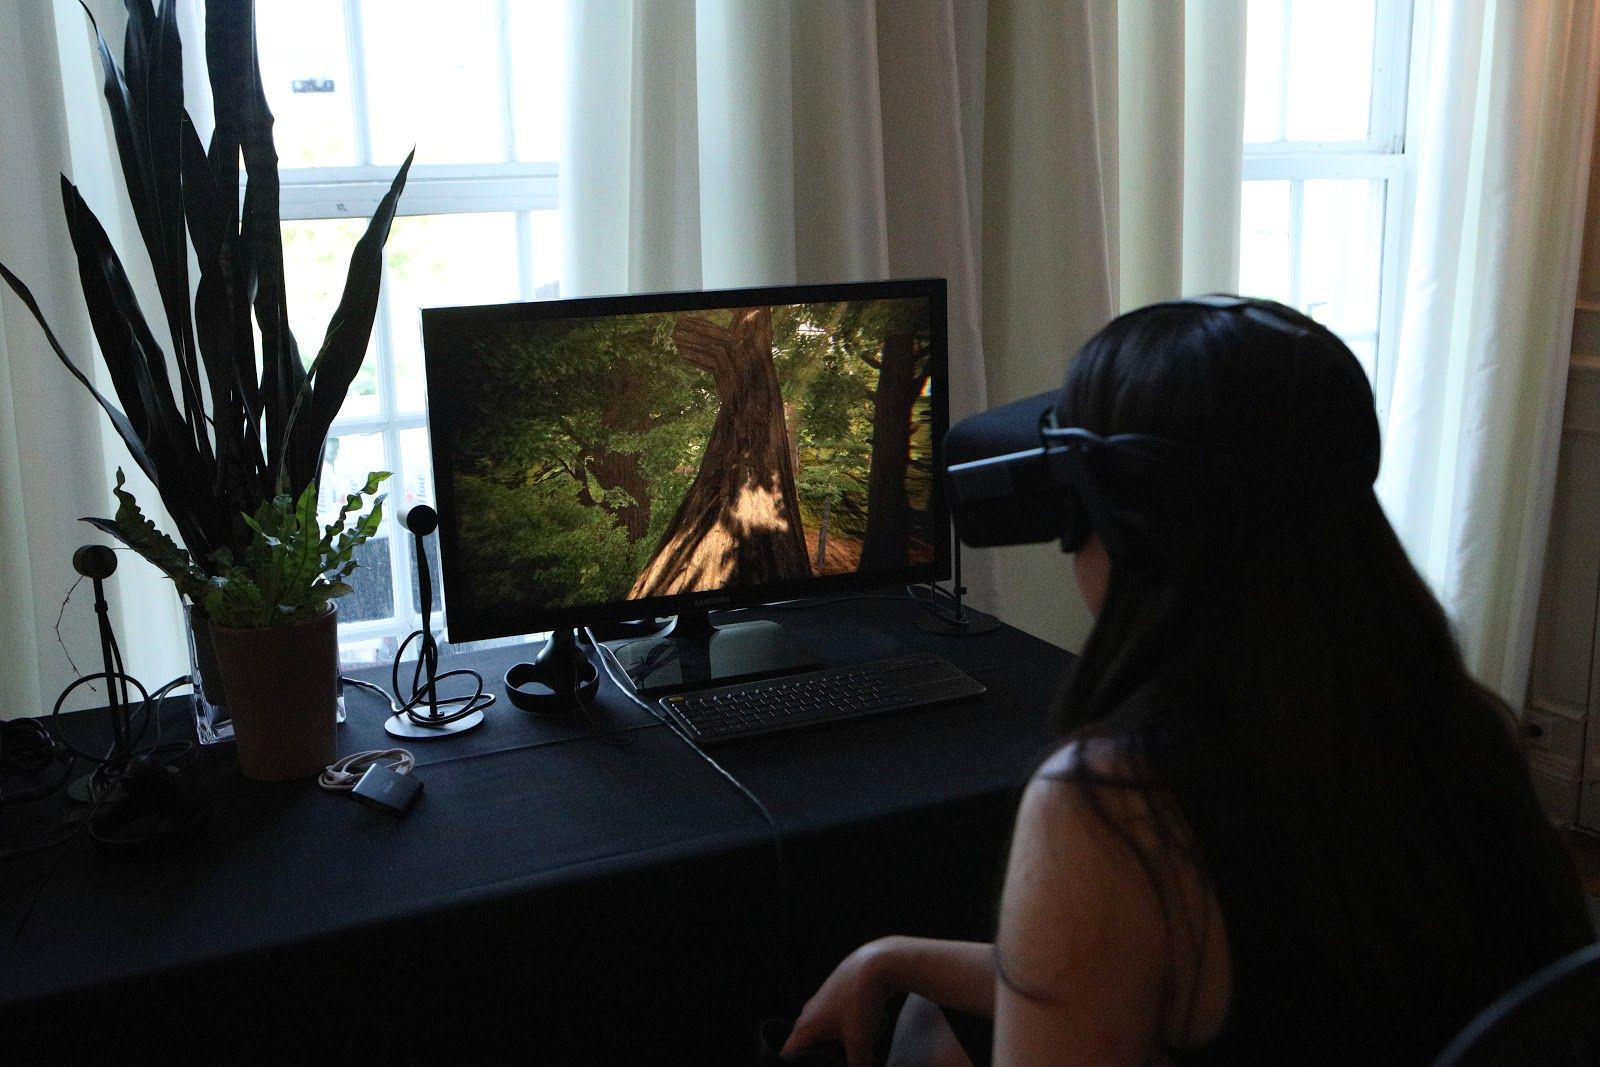 A person sitting at a desk wearing a VR headset. On the screen in front her is an image of a forest.